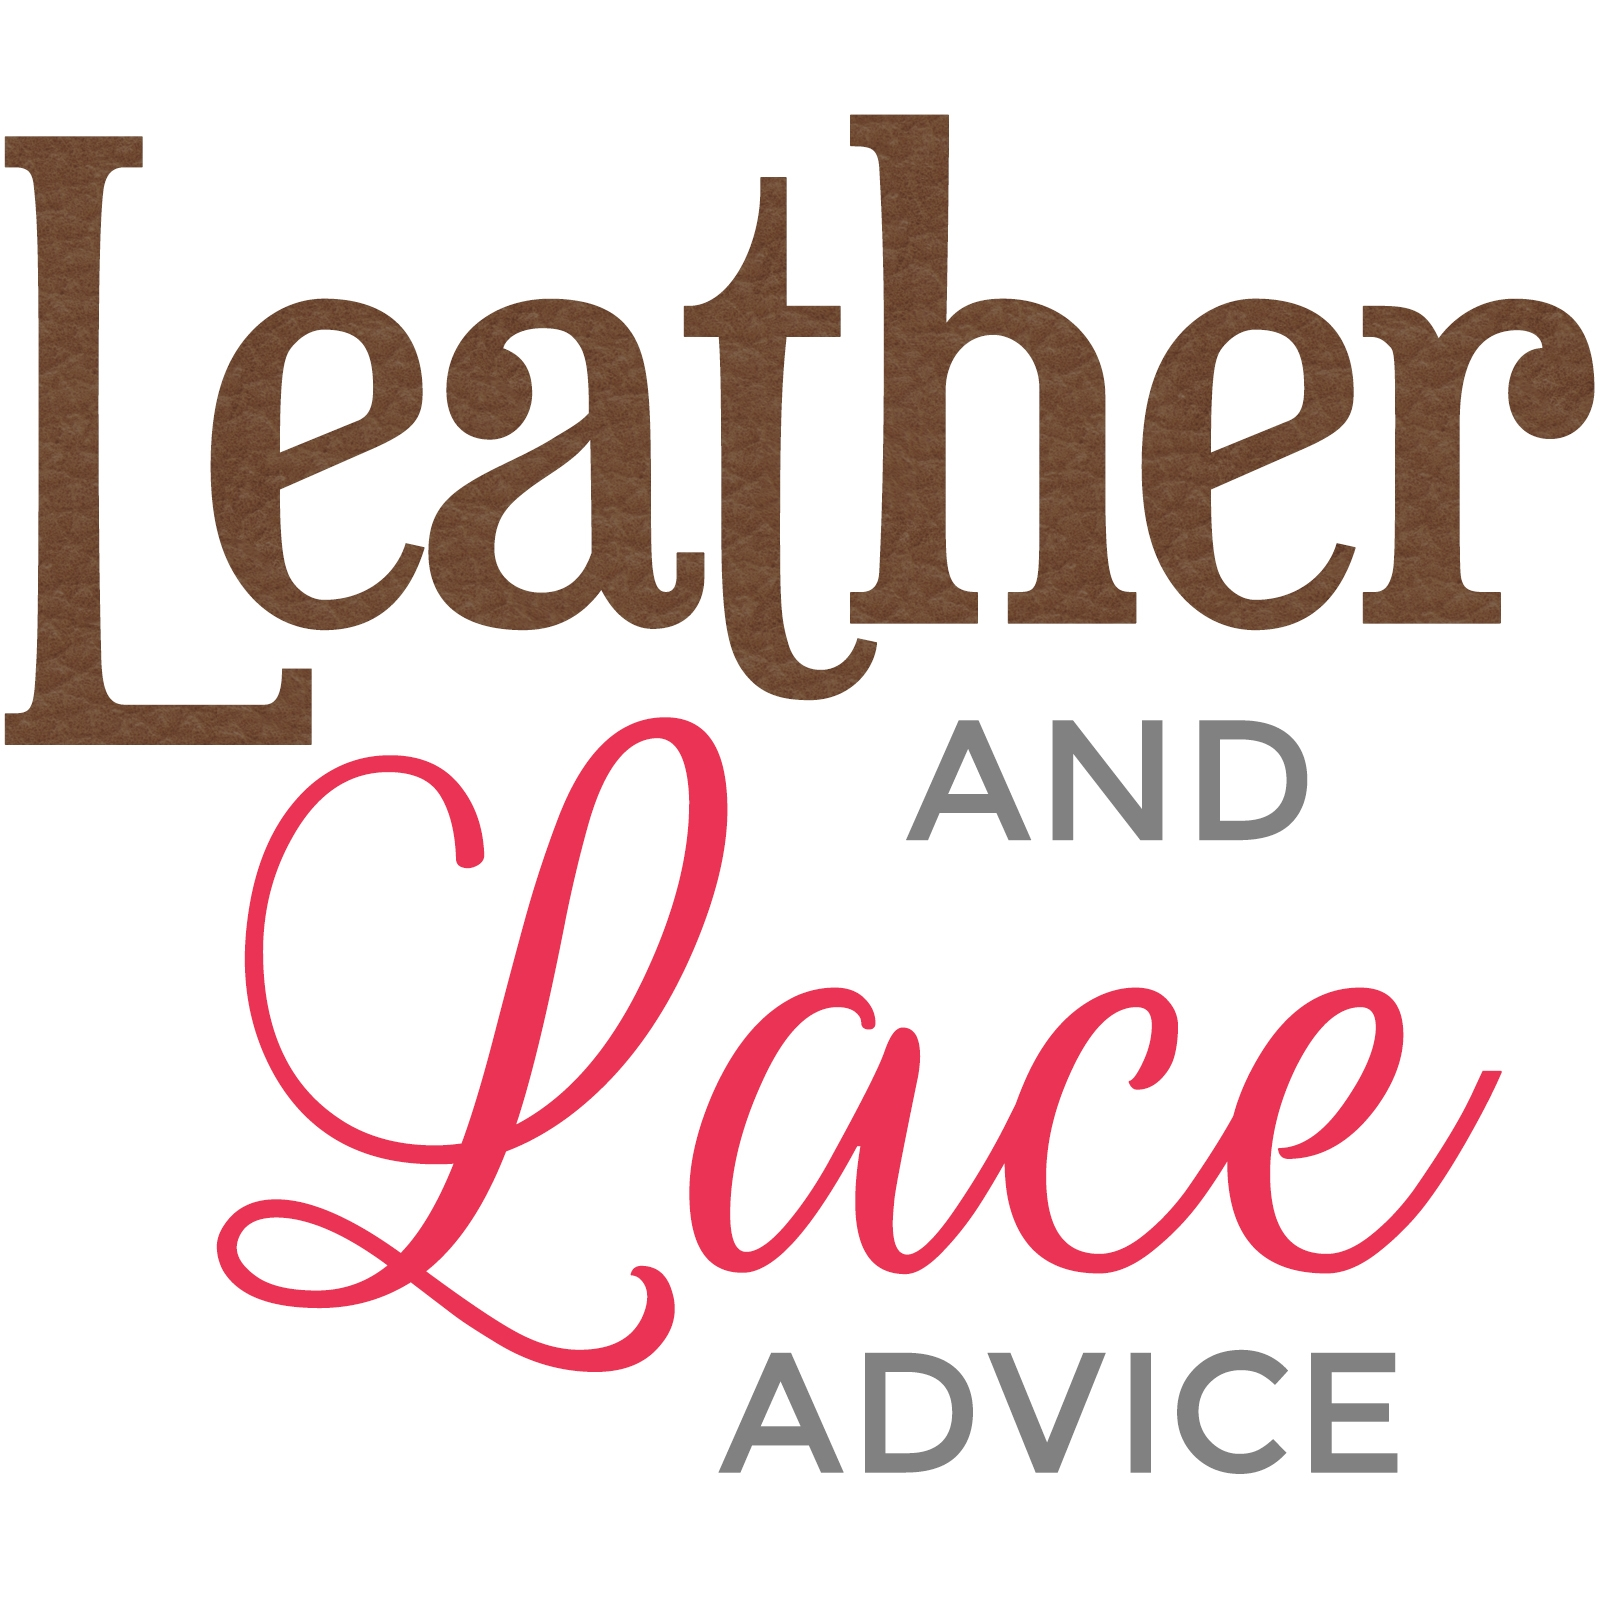 leather and lace advice